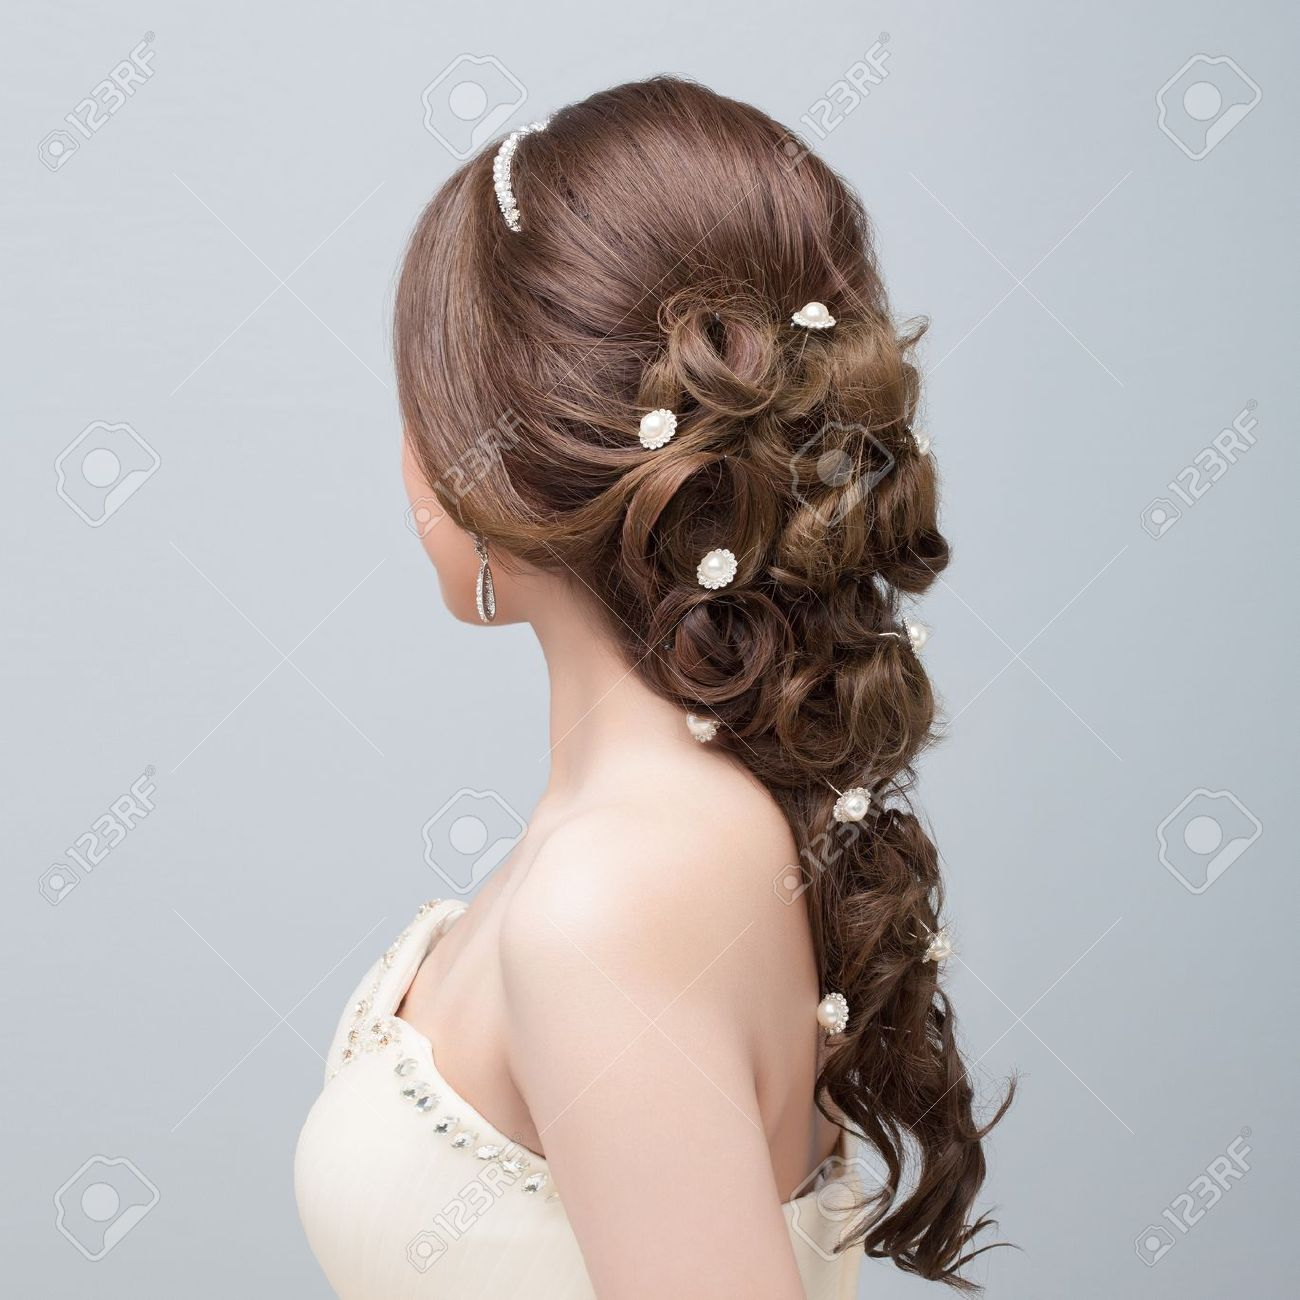 bridal hair style stock photo, picture and royalty free image